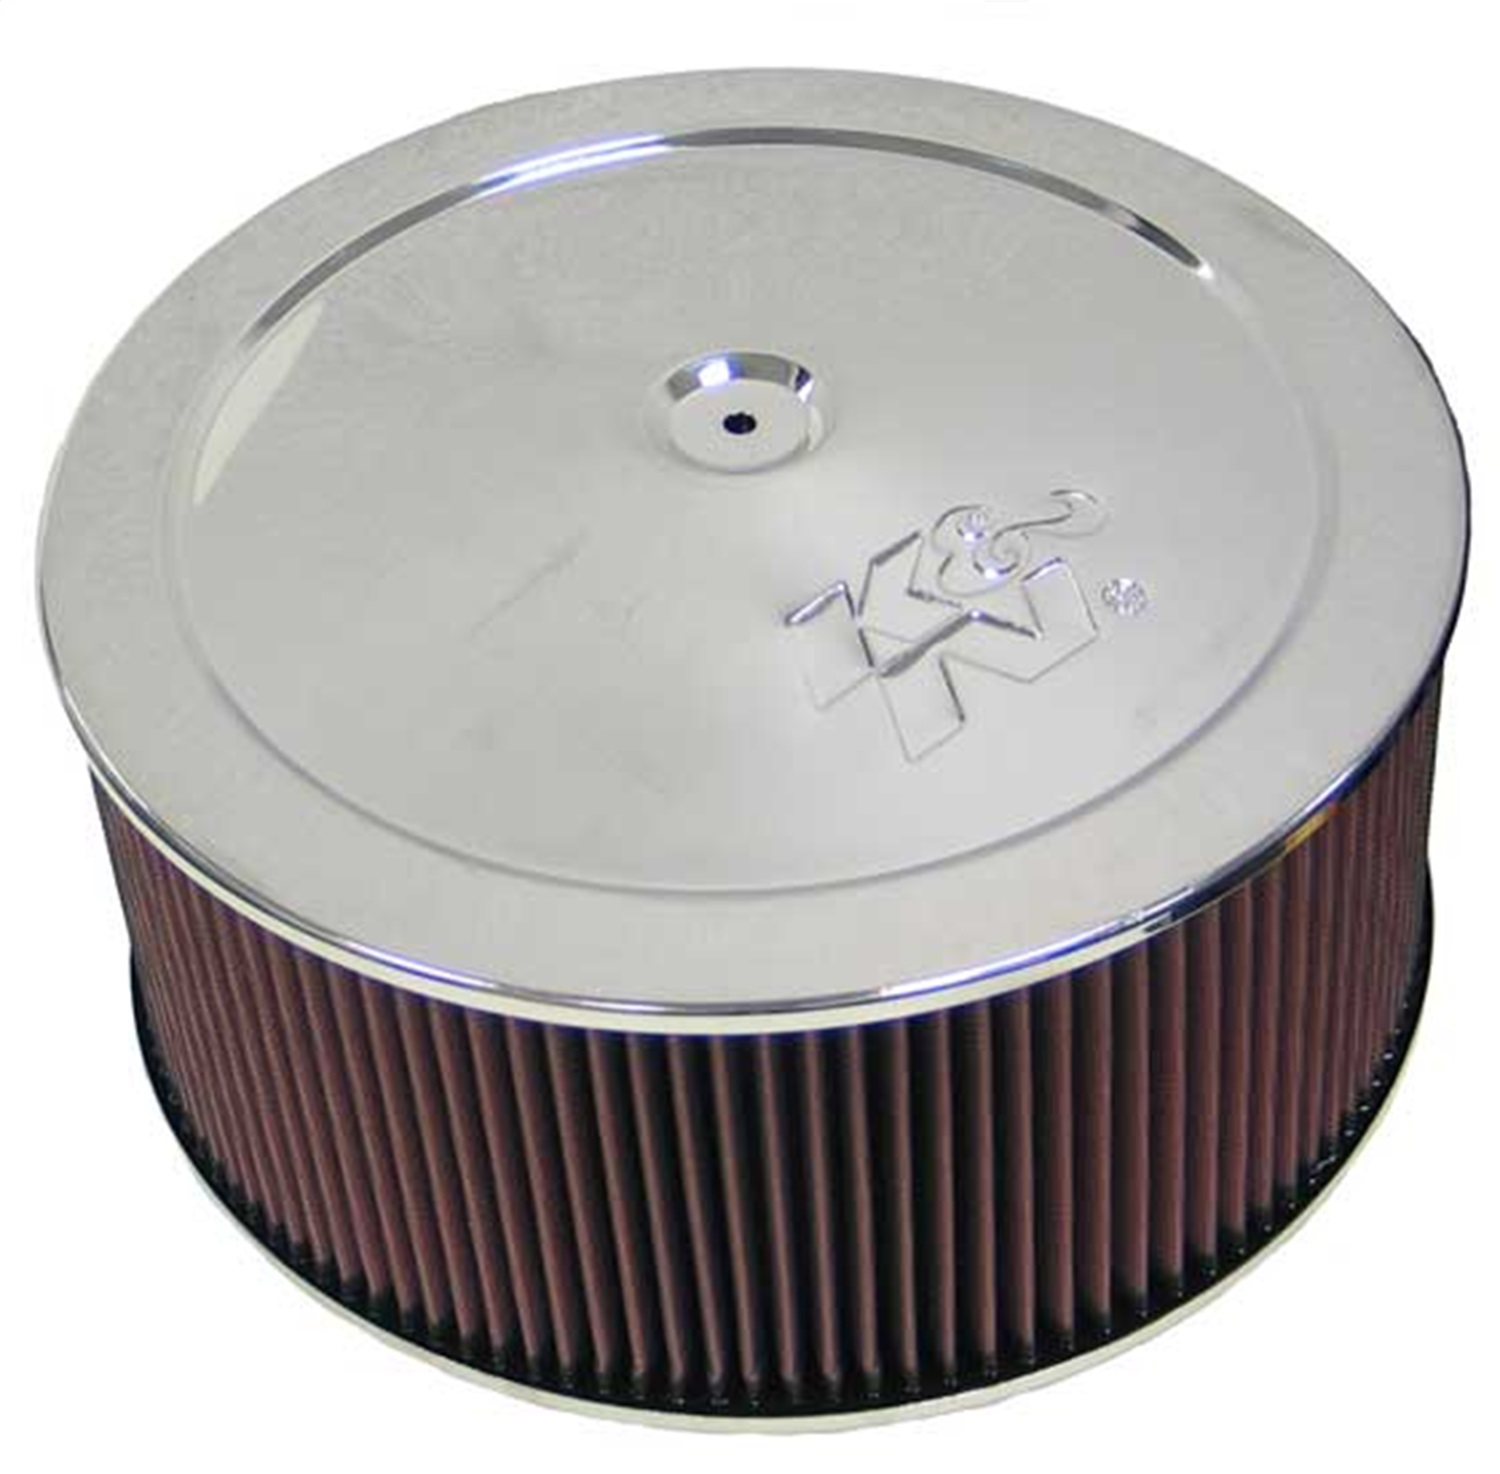 K&N Filters 60-1310 Custom Air Cleaner Assembly 60-1310